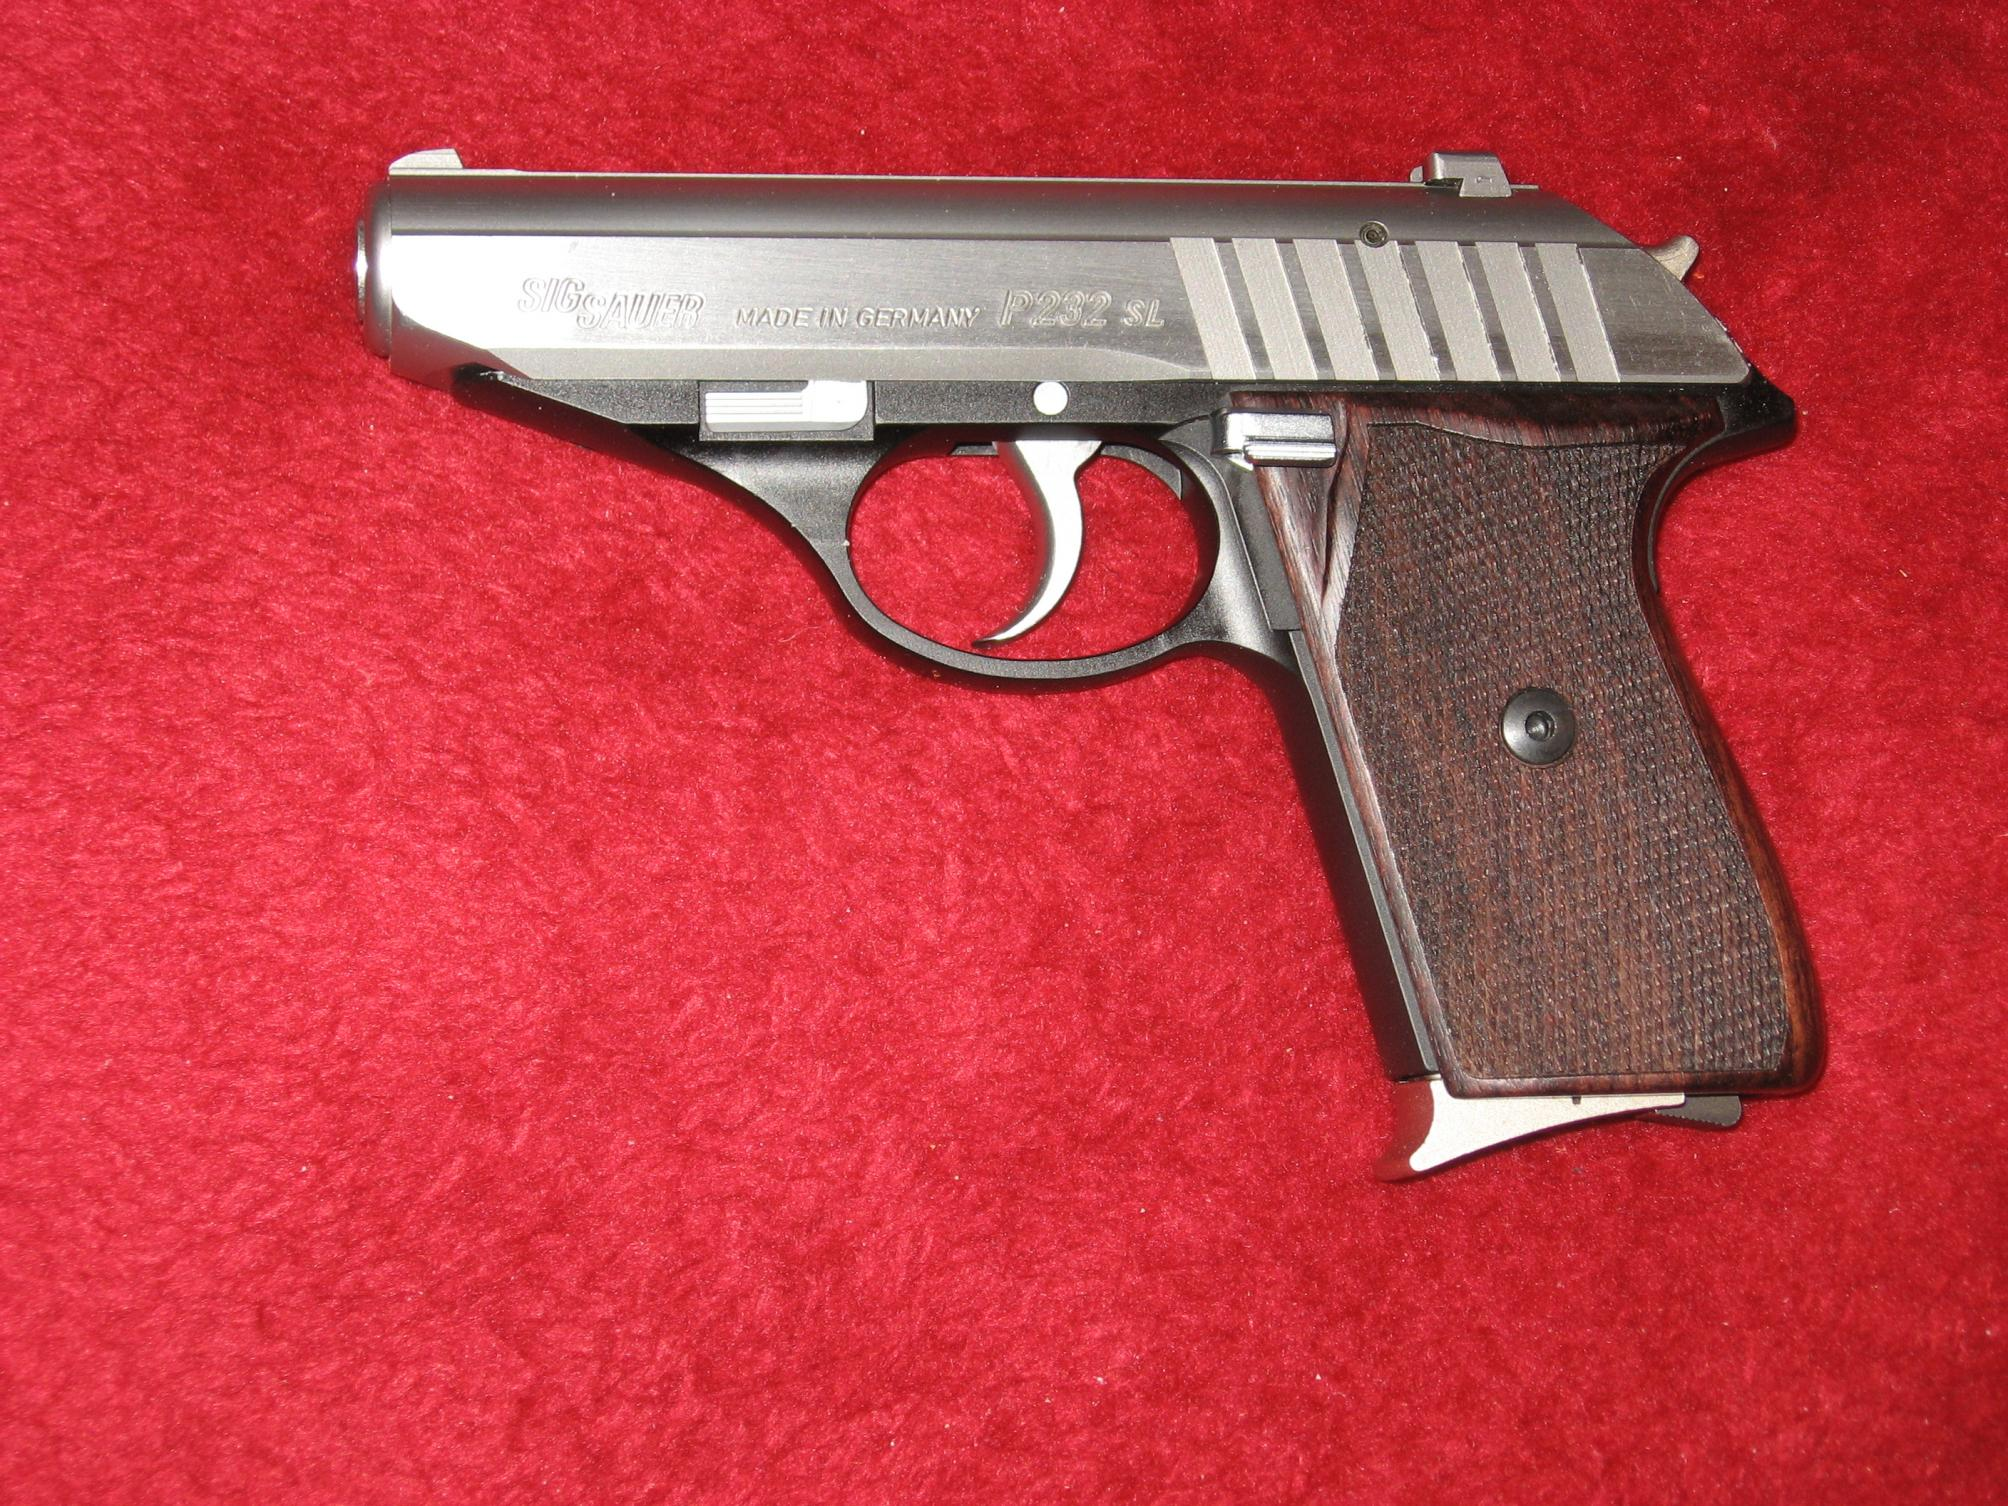 Sig 232 project-No plastic guns for me-img_4416.jpg